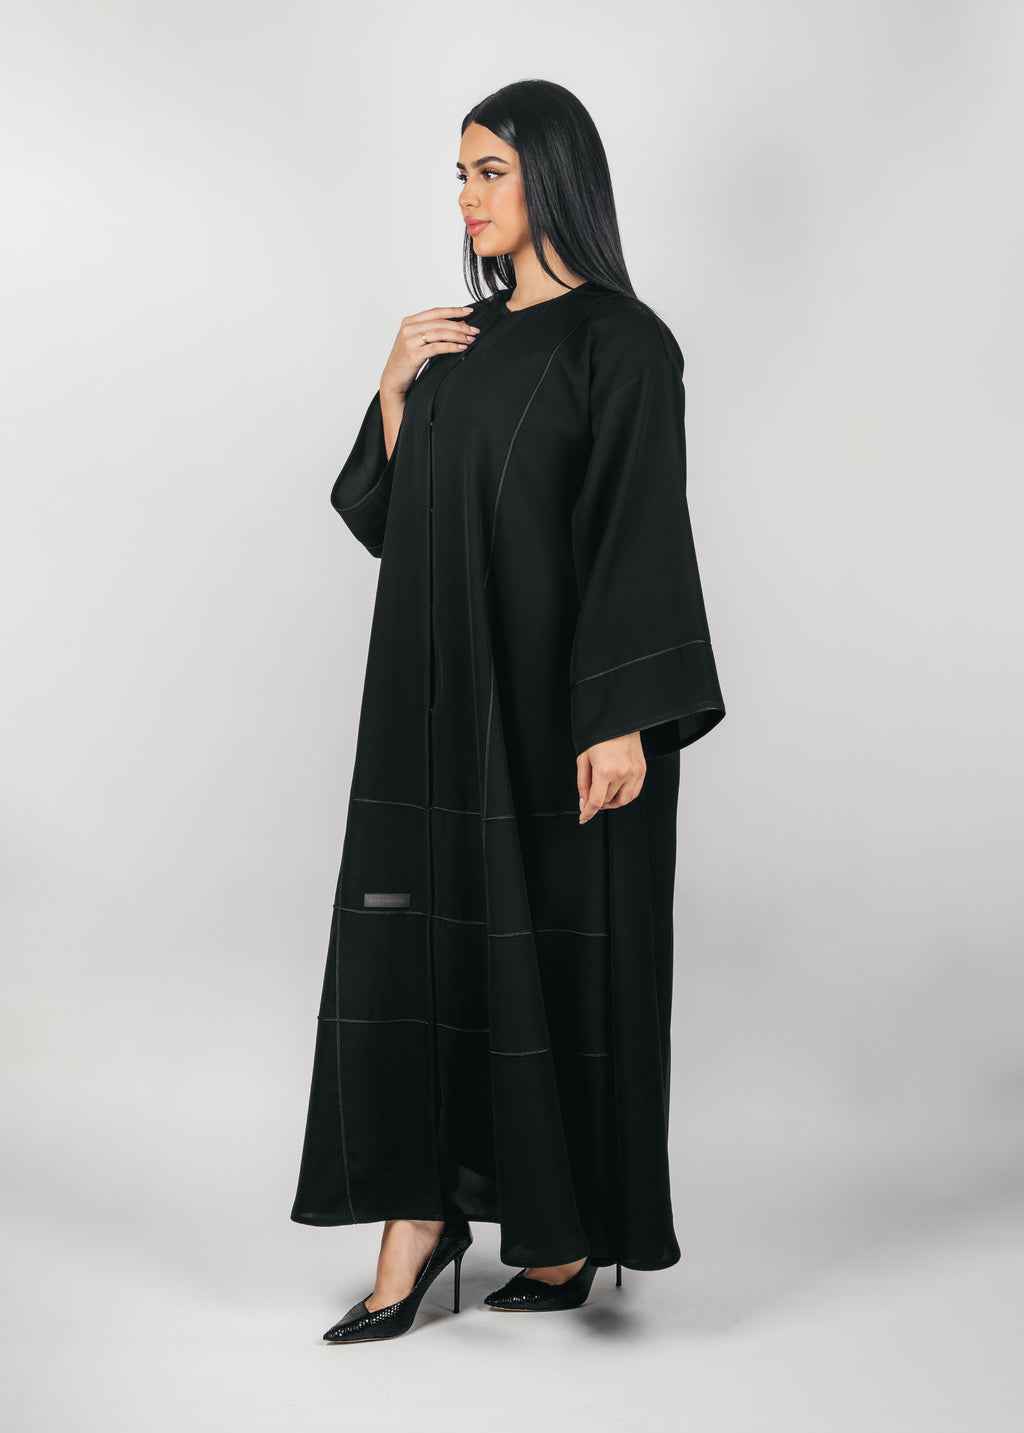 BLACK PLAIN DOUBLE CLOCHE CREPE ABAYA.